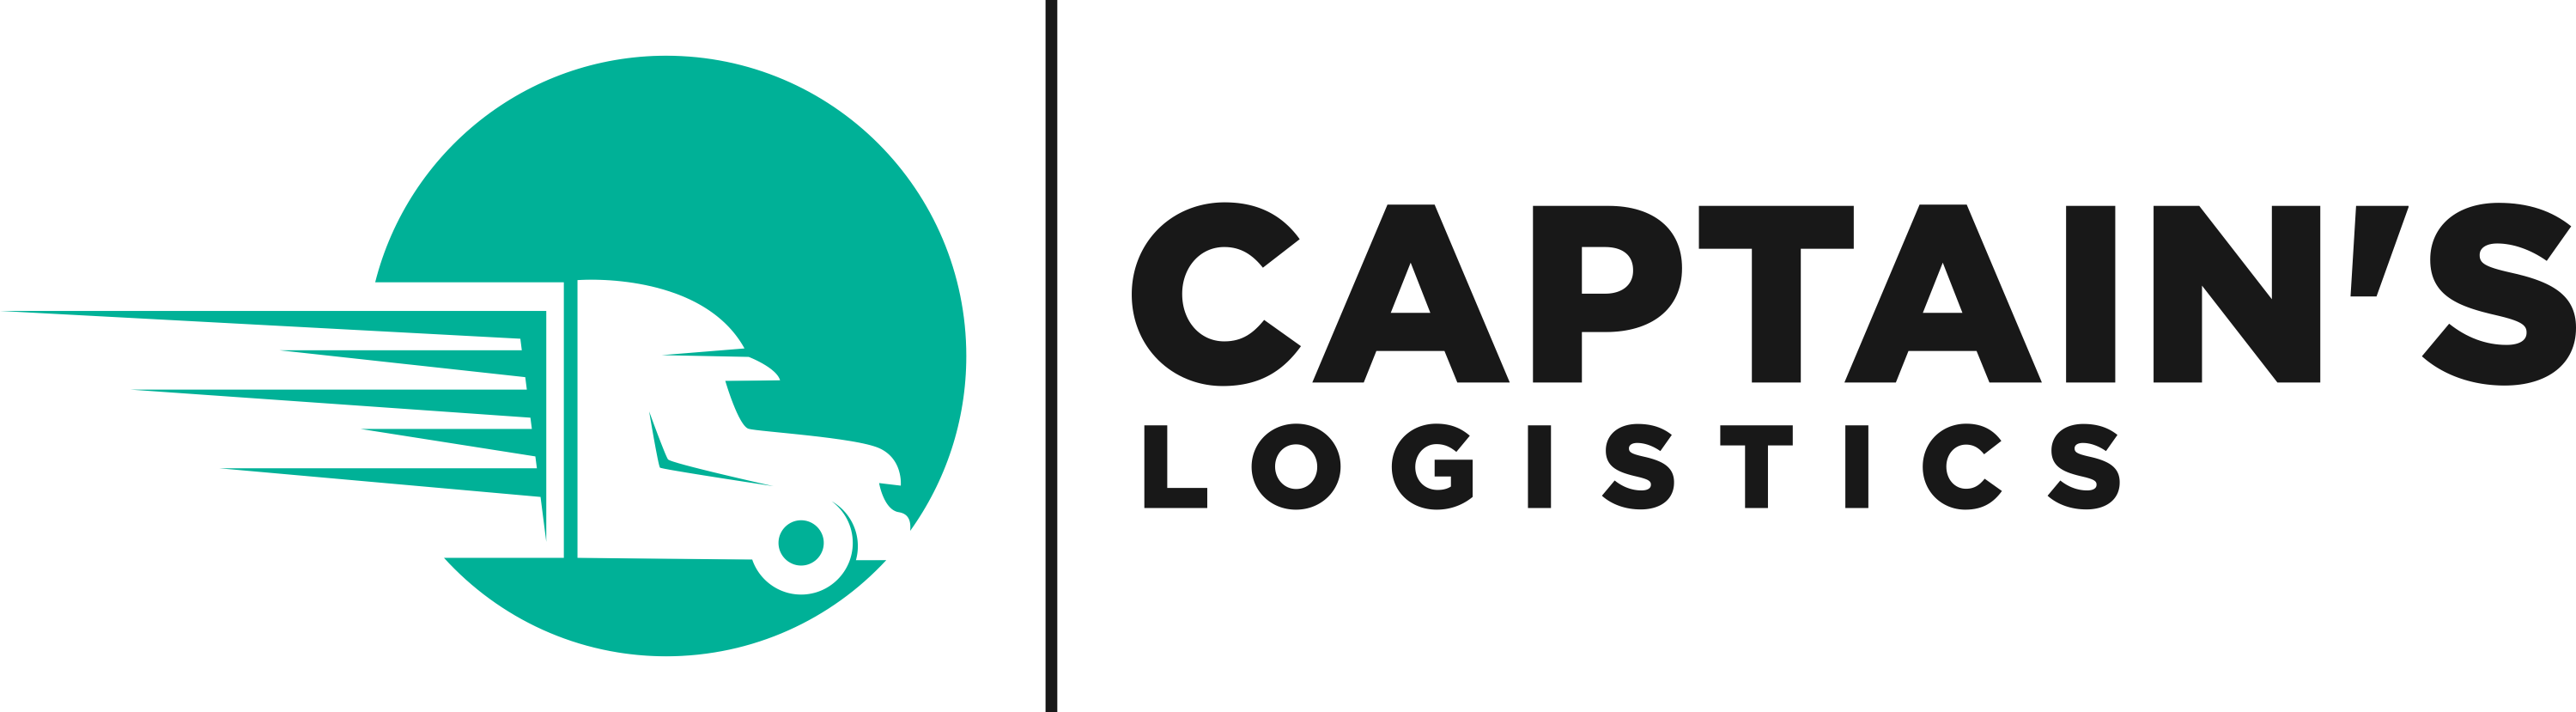 Captain's Logistics